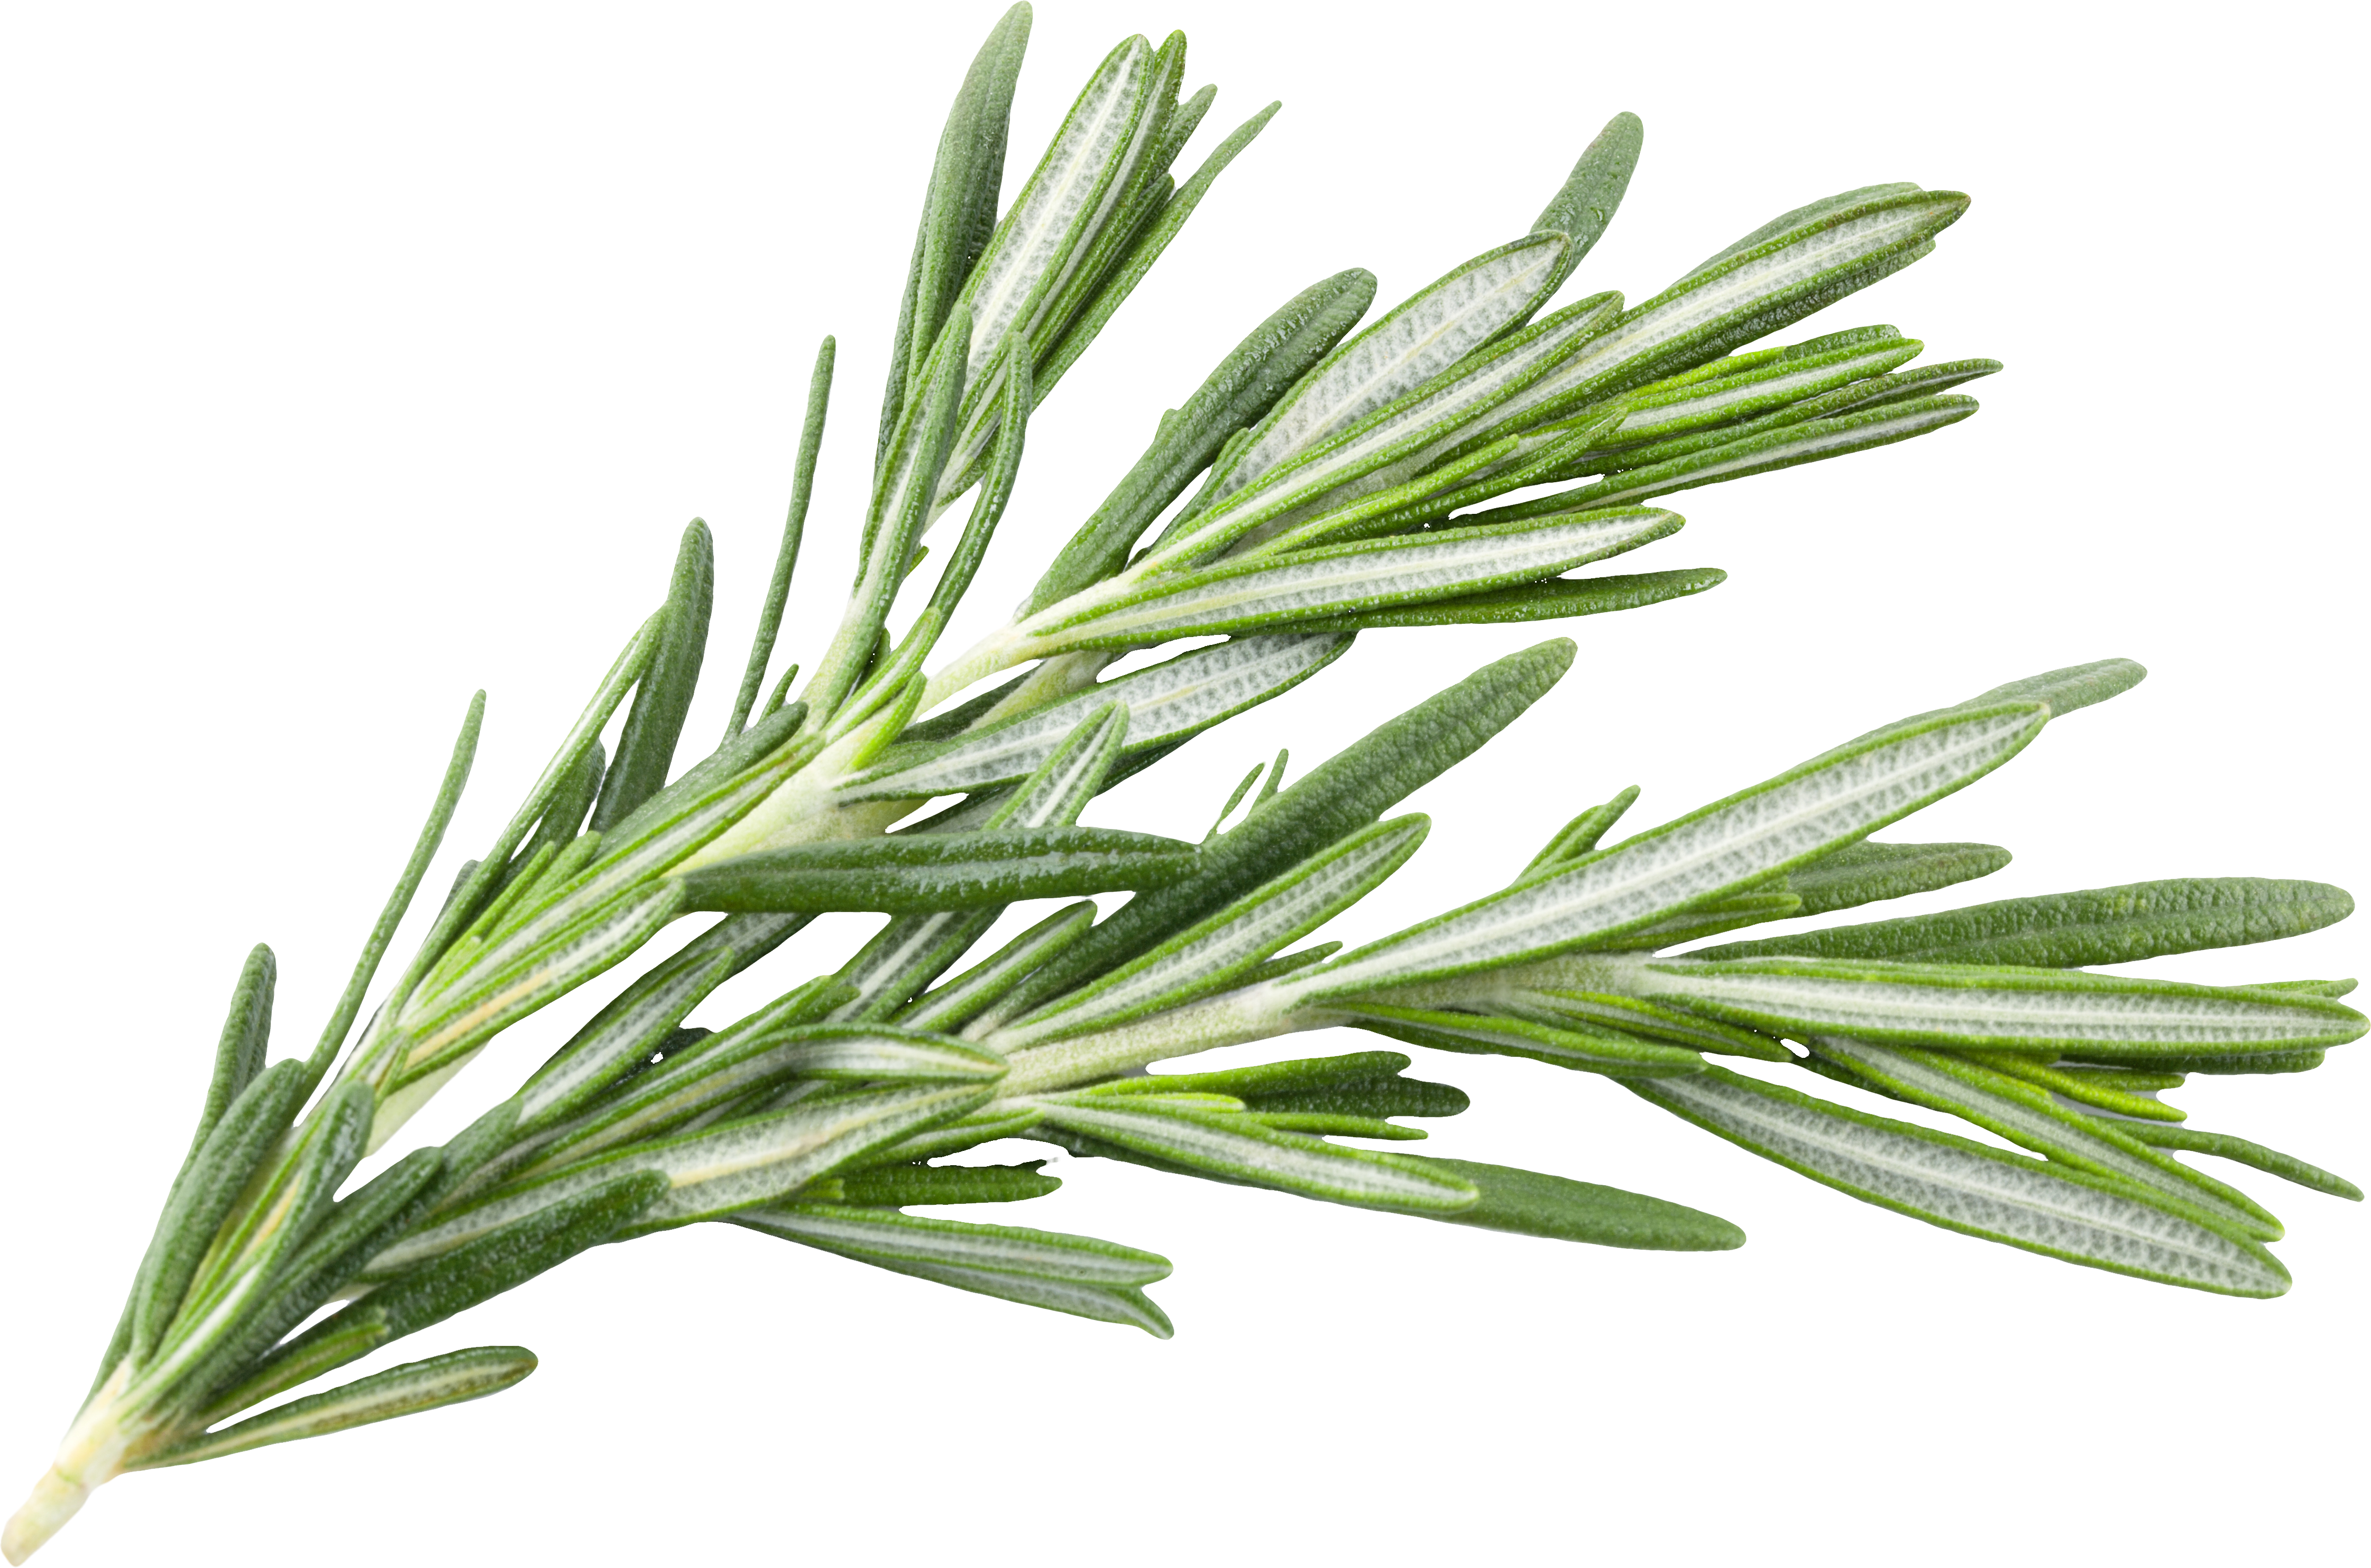 A sprig of green rosemary